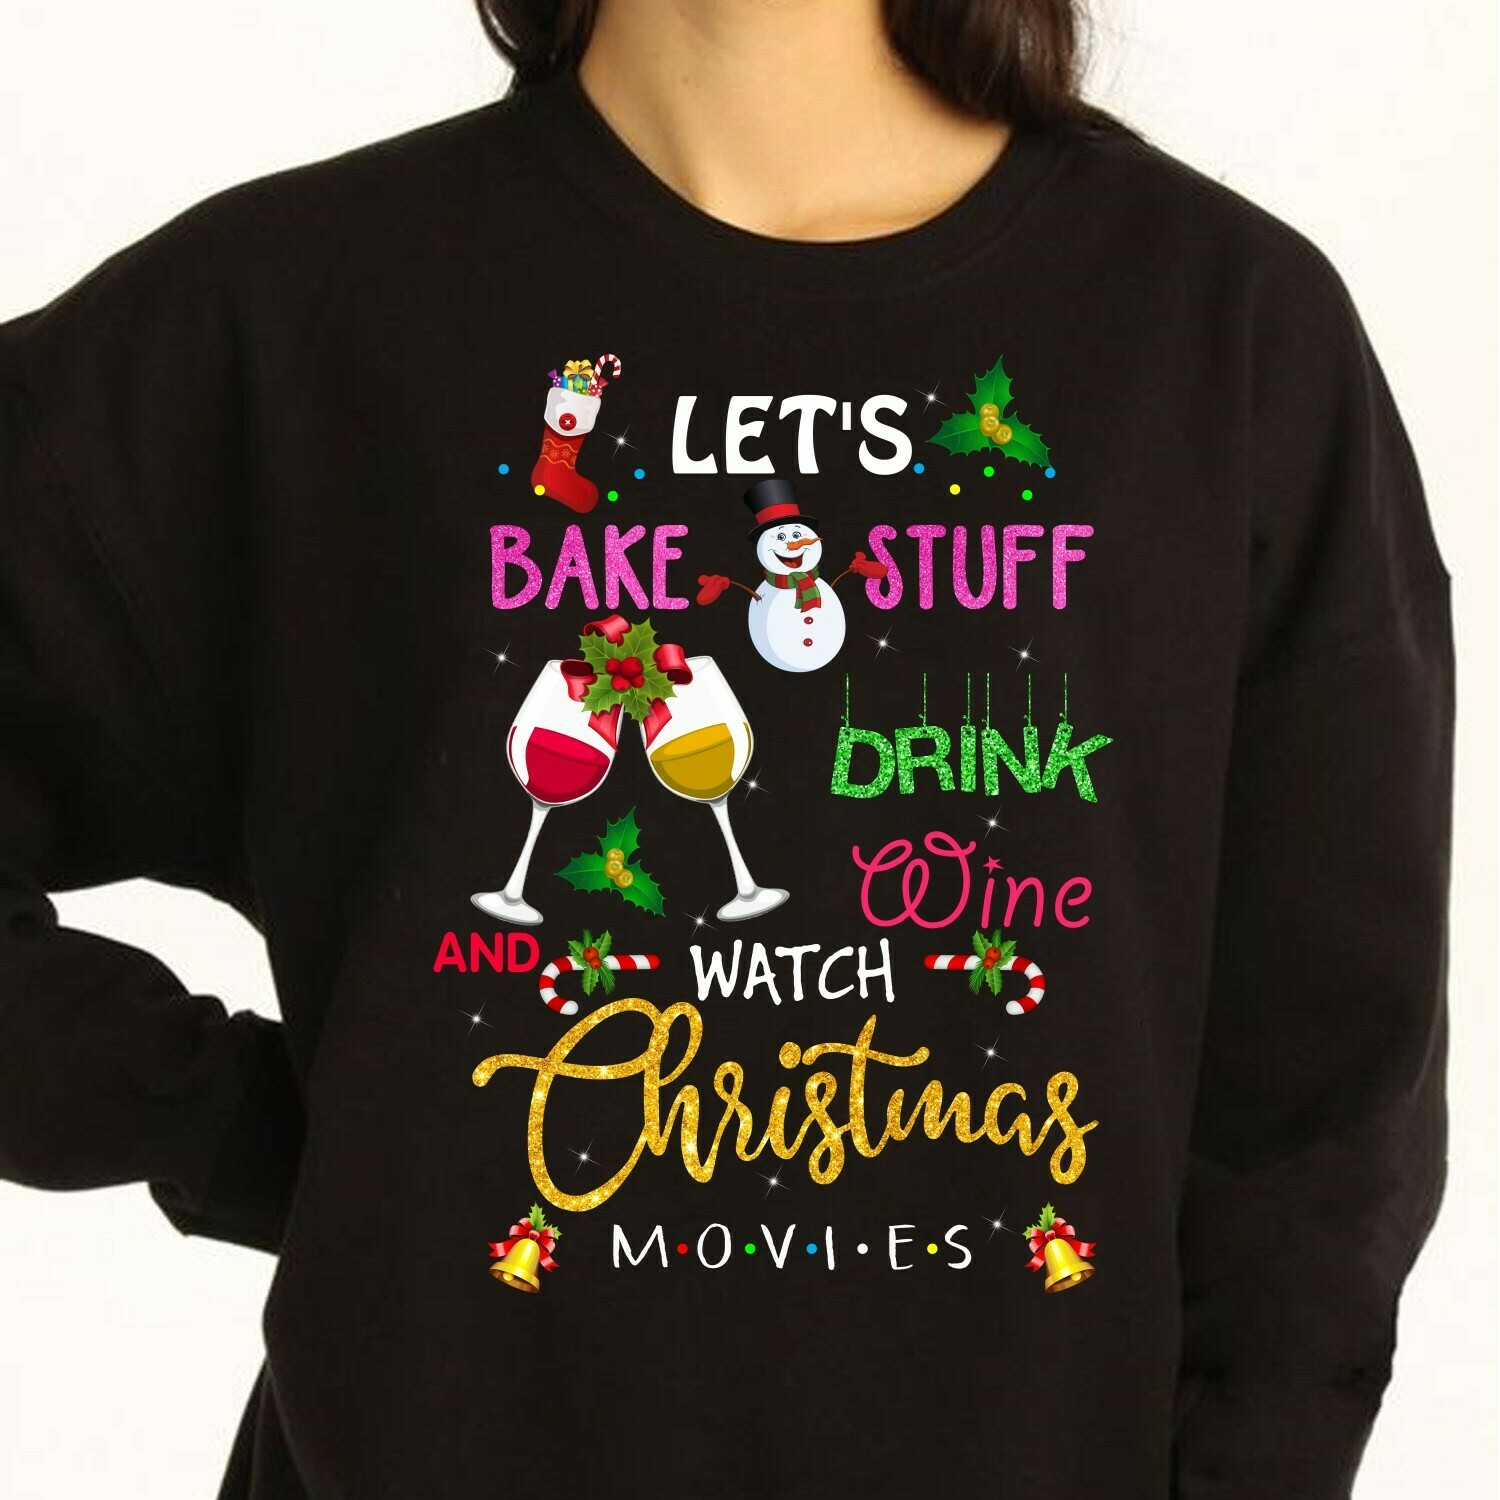 Let's Bake Stuff Drink Wine And Watch Hallmark Christmas Movies,Hallmark Christmas movies,Holiday Xmas Noel family party Tee T shirt Long Sleeve Sweatshirt Hoodie Jolly Family Gifts